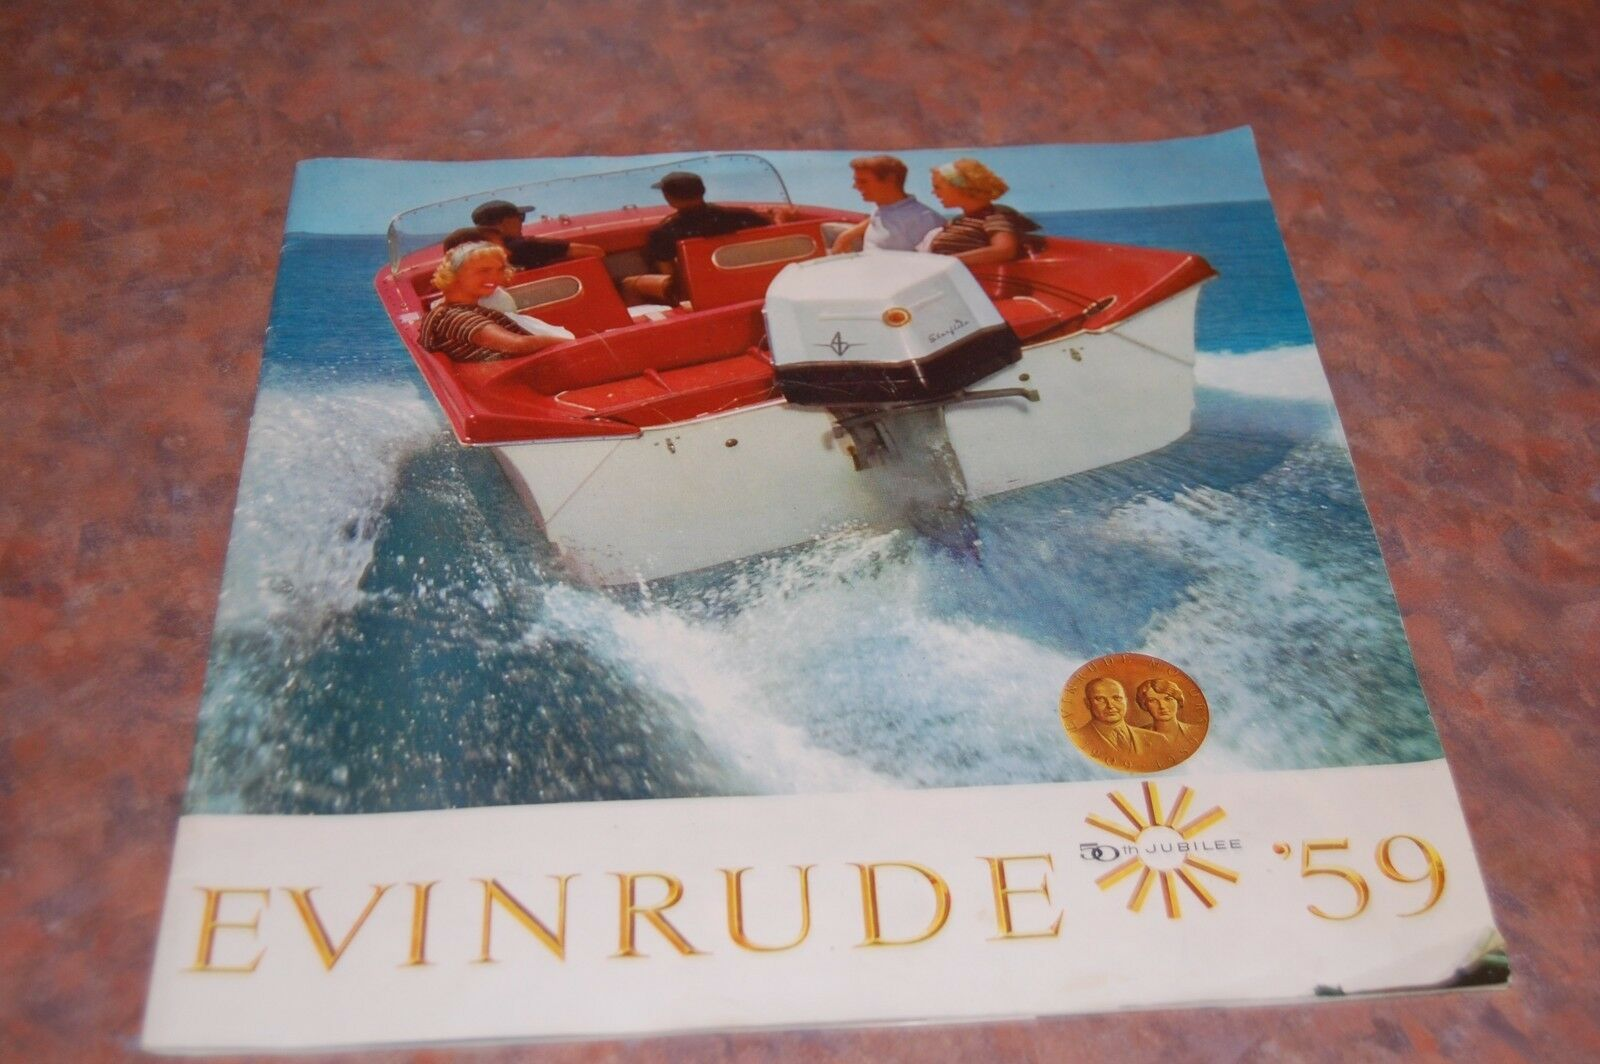 1959 Evinrude  Outboard Motors Catalog 50th Jubilee  official authorization